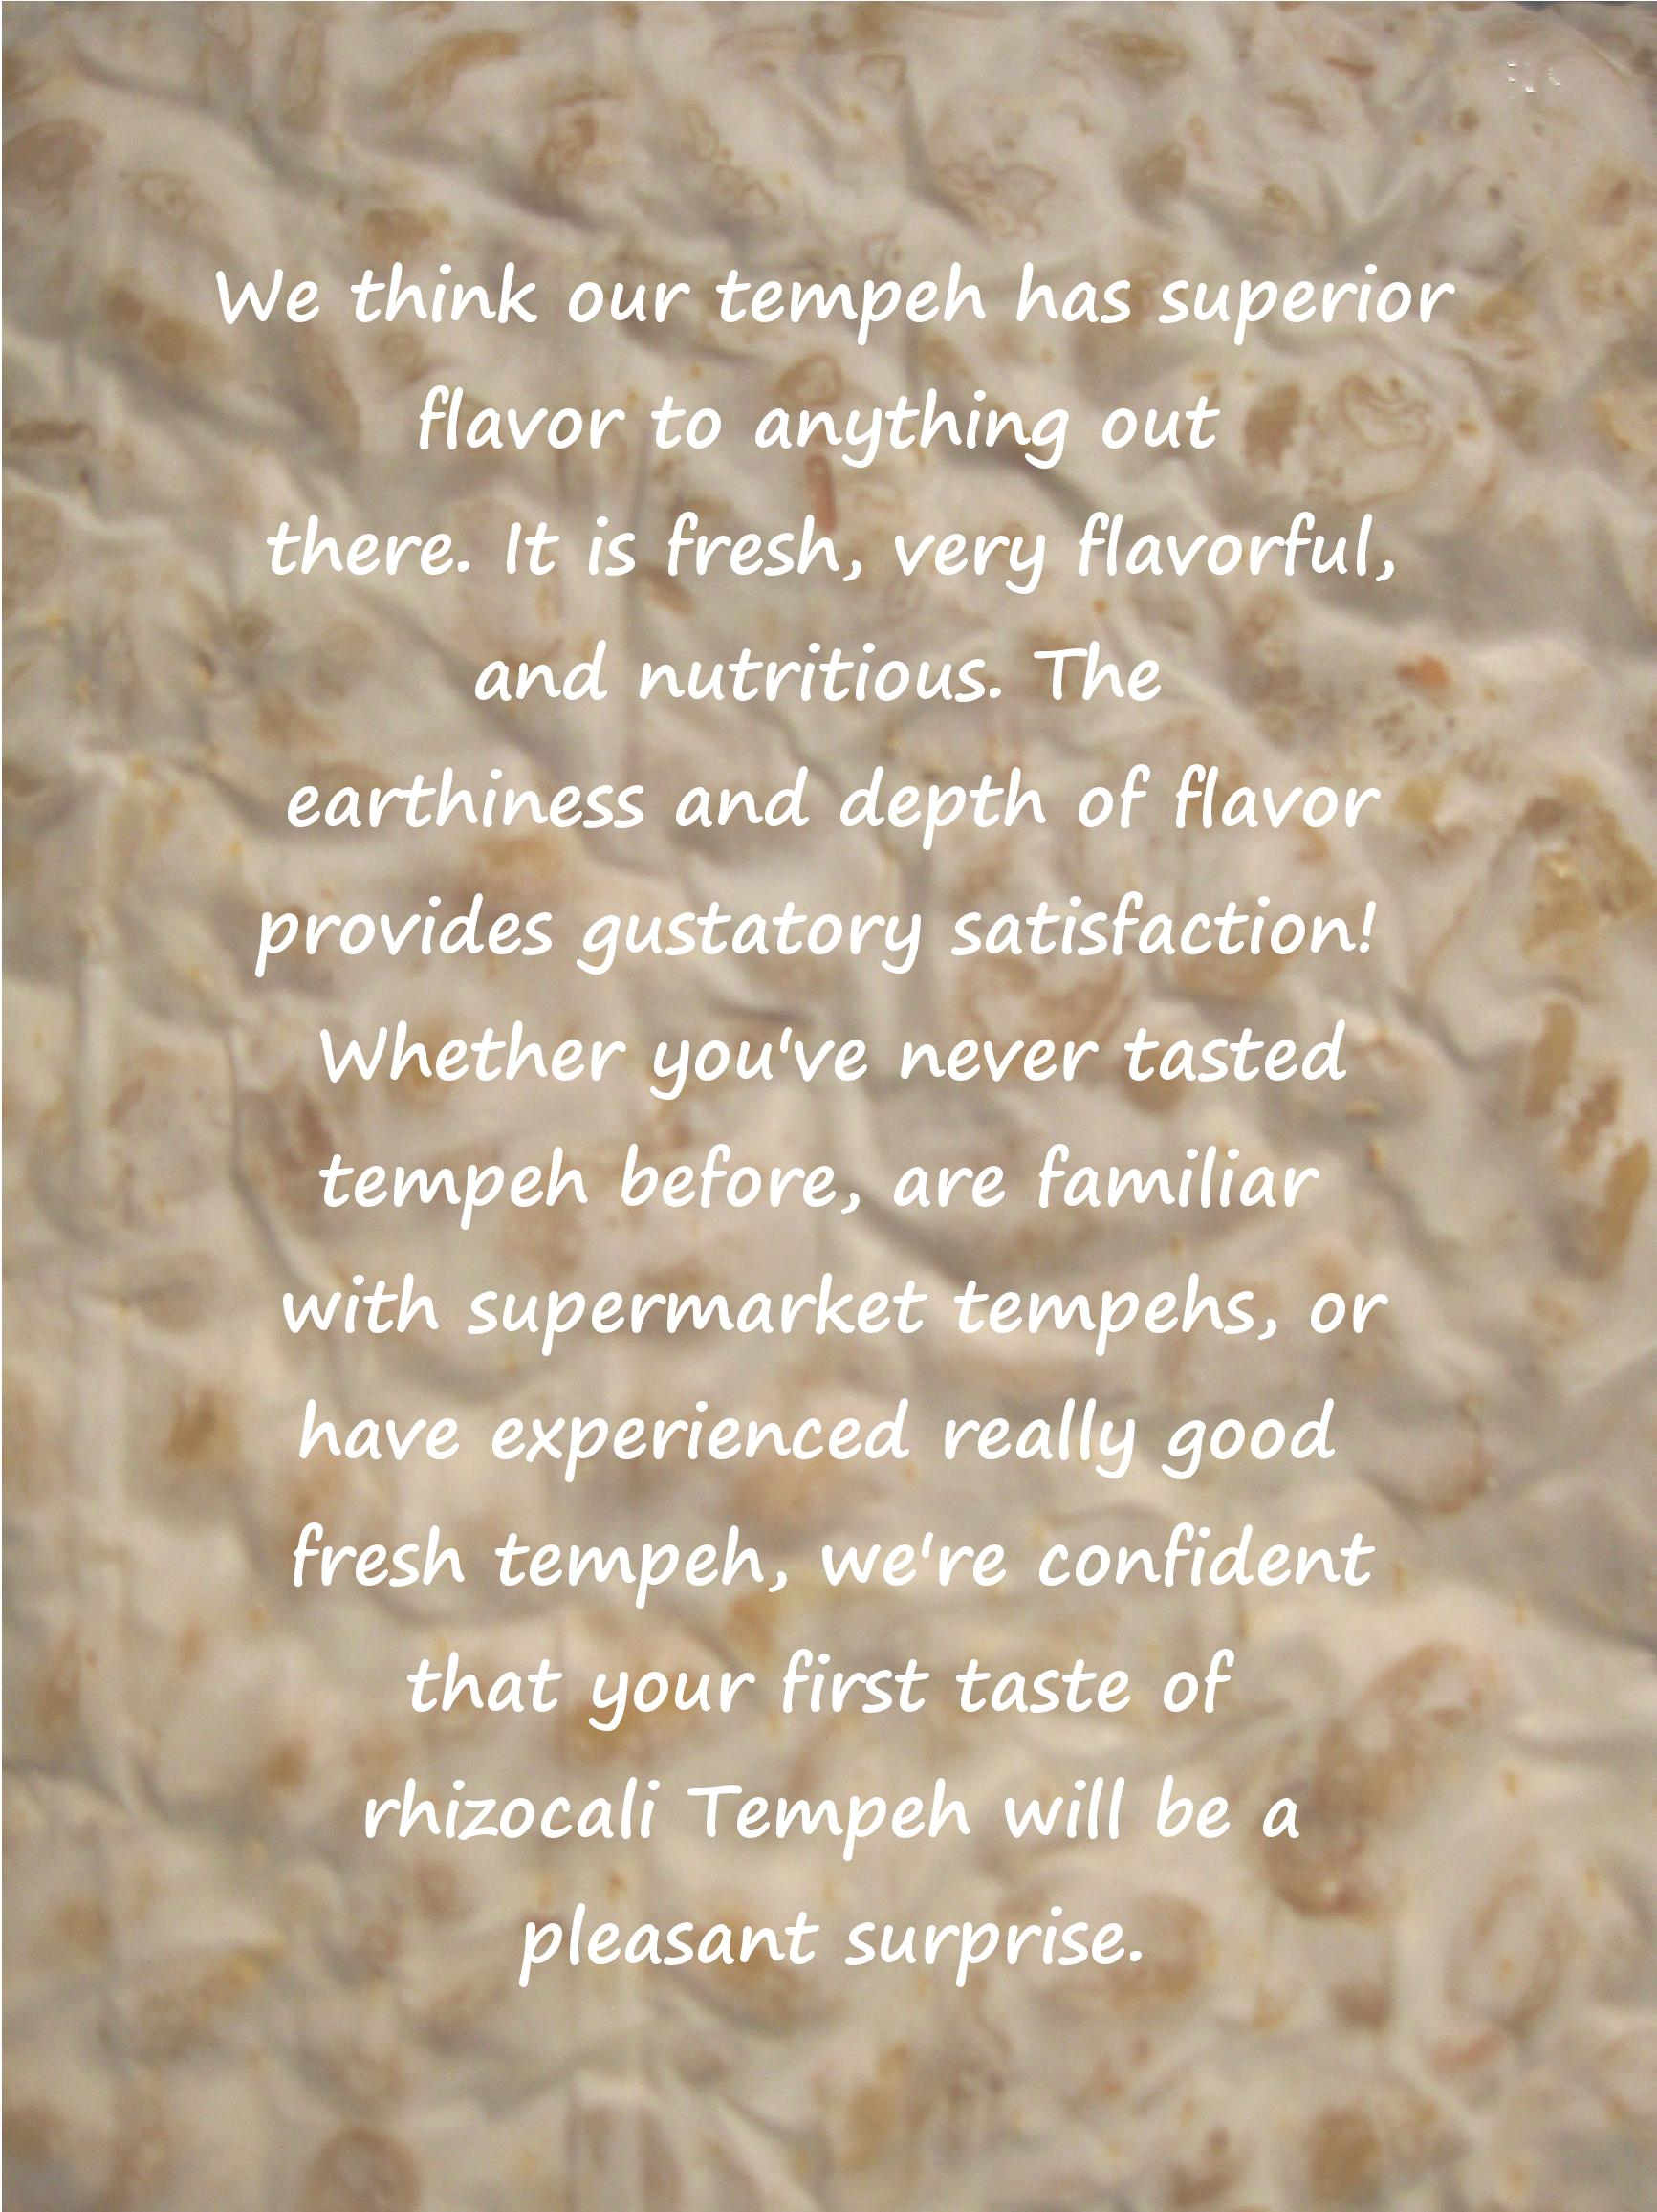 We think our tempeh has superior flavor to anything out there. It is fresh, very flavorful and nutritious. The earthiness and depth of flavor provides a satisfying gustatory experience. Whether you've never tasted tempeh before, are familiar with supermarket tempehs, or have experienced really good fresh tempeh, we're confident that your first taste of rhizocali tempeh will be a pleasant surprise.